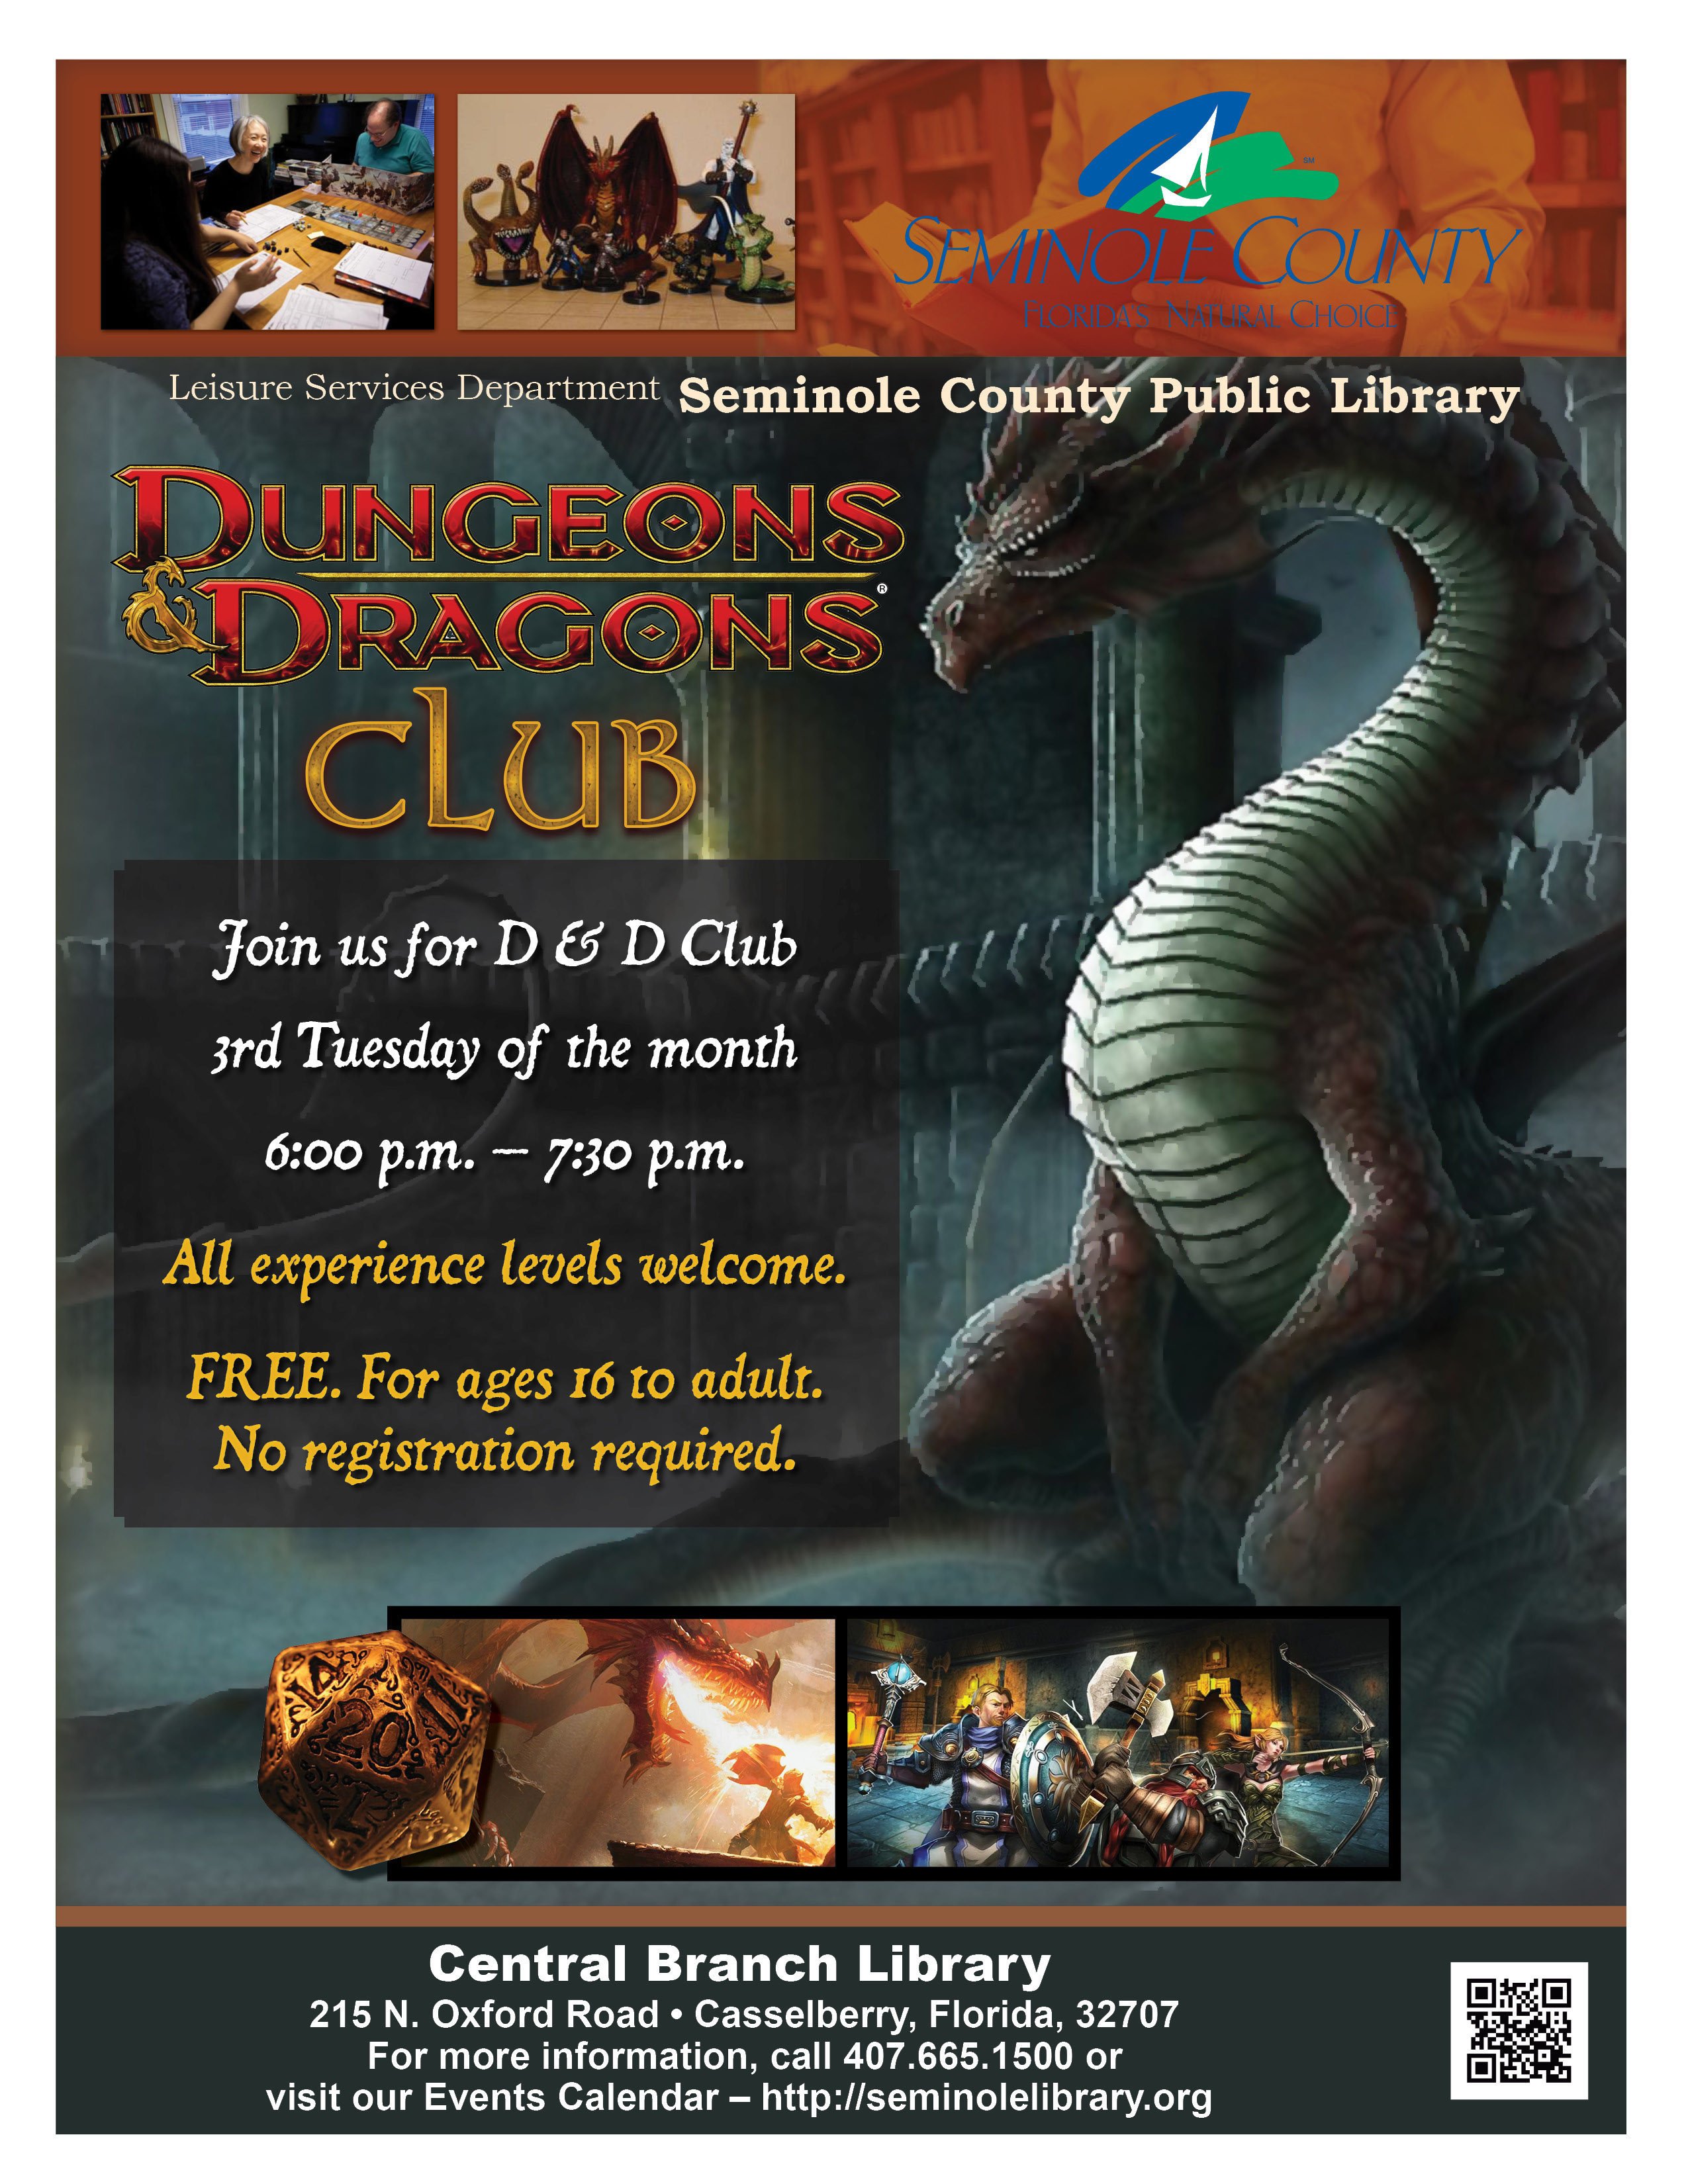 Dungeons & Dragons Club @ Central Branch Library (Casselberry)